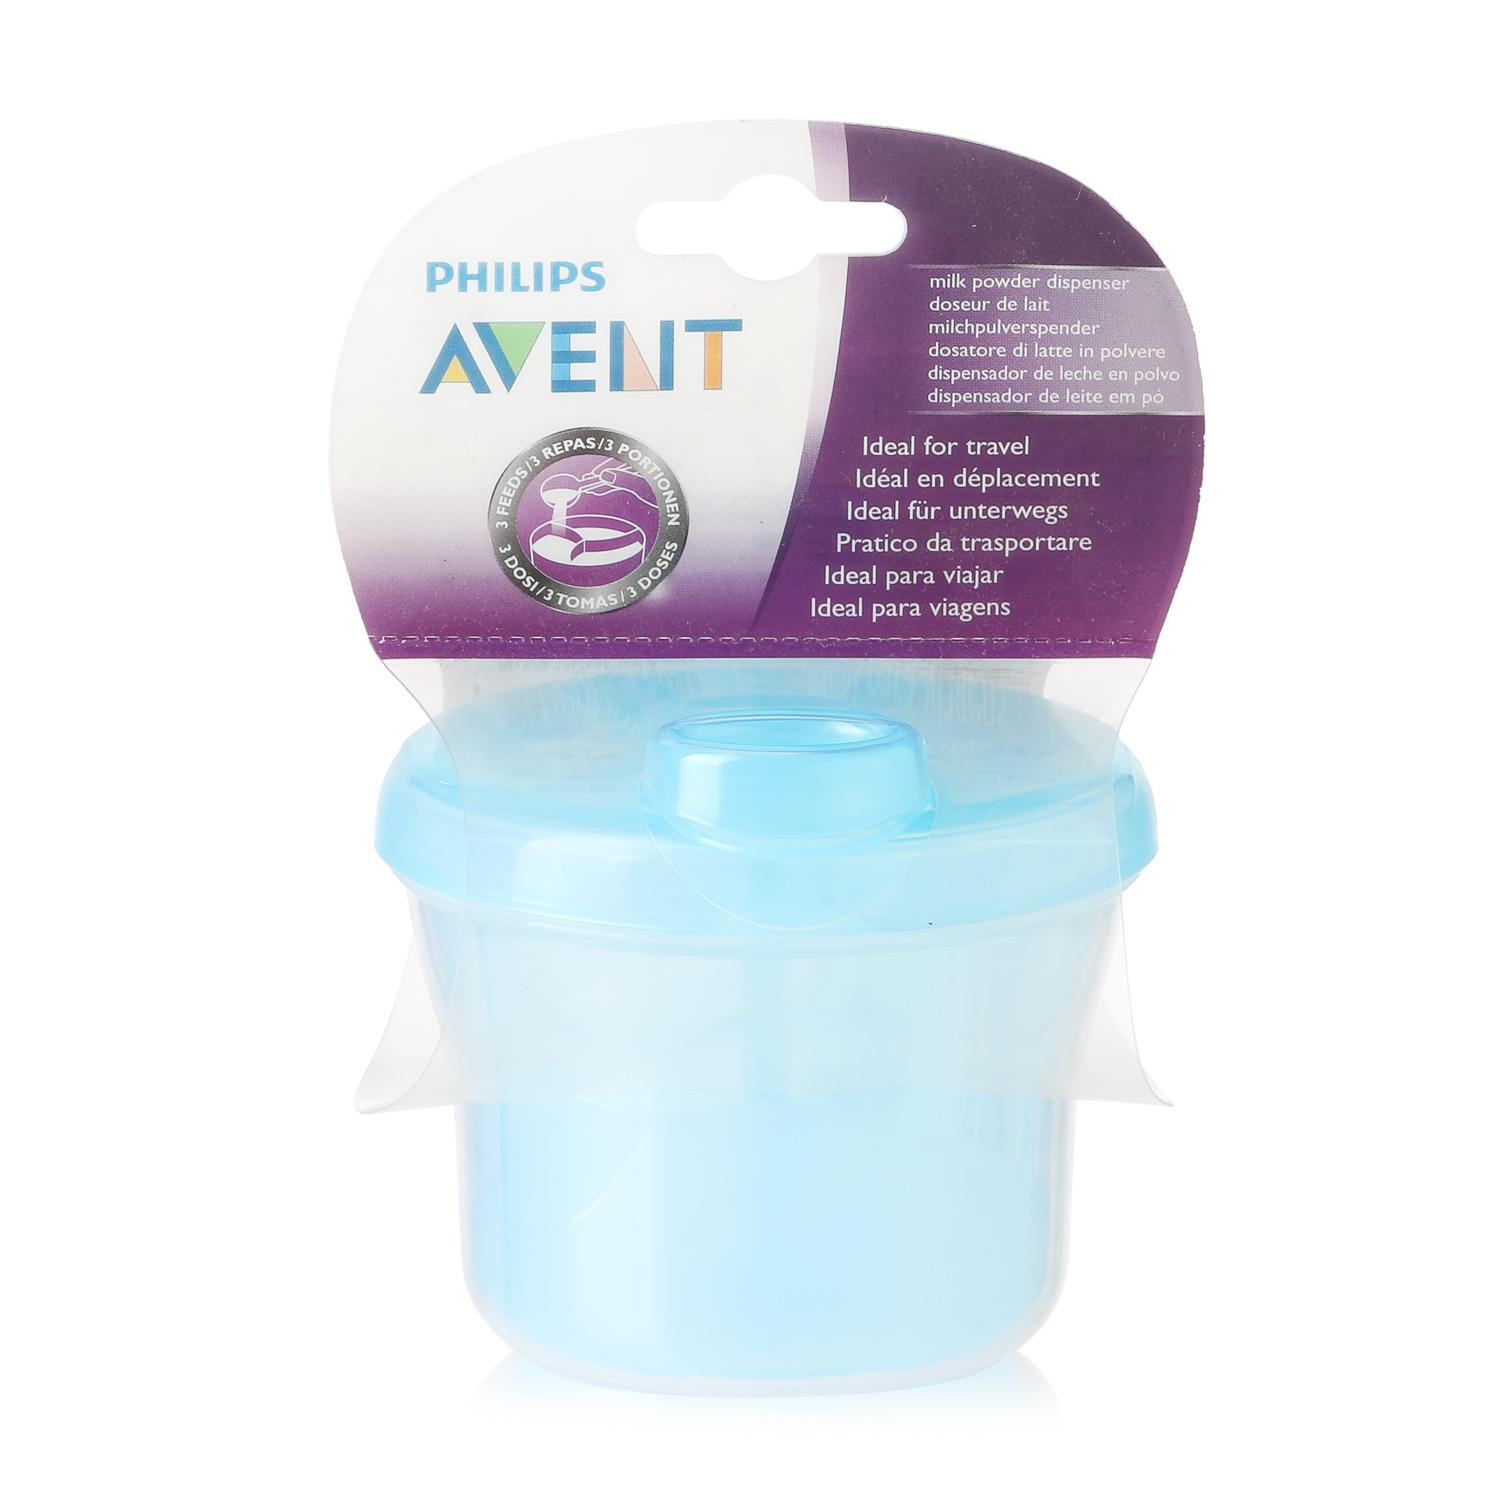 Philips Avent Milk Powder Dispenser By The Sm Store